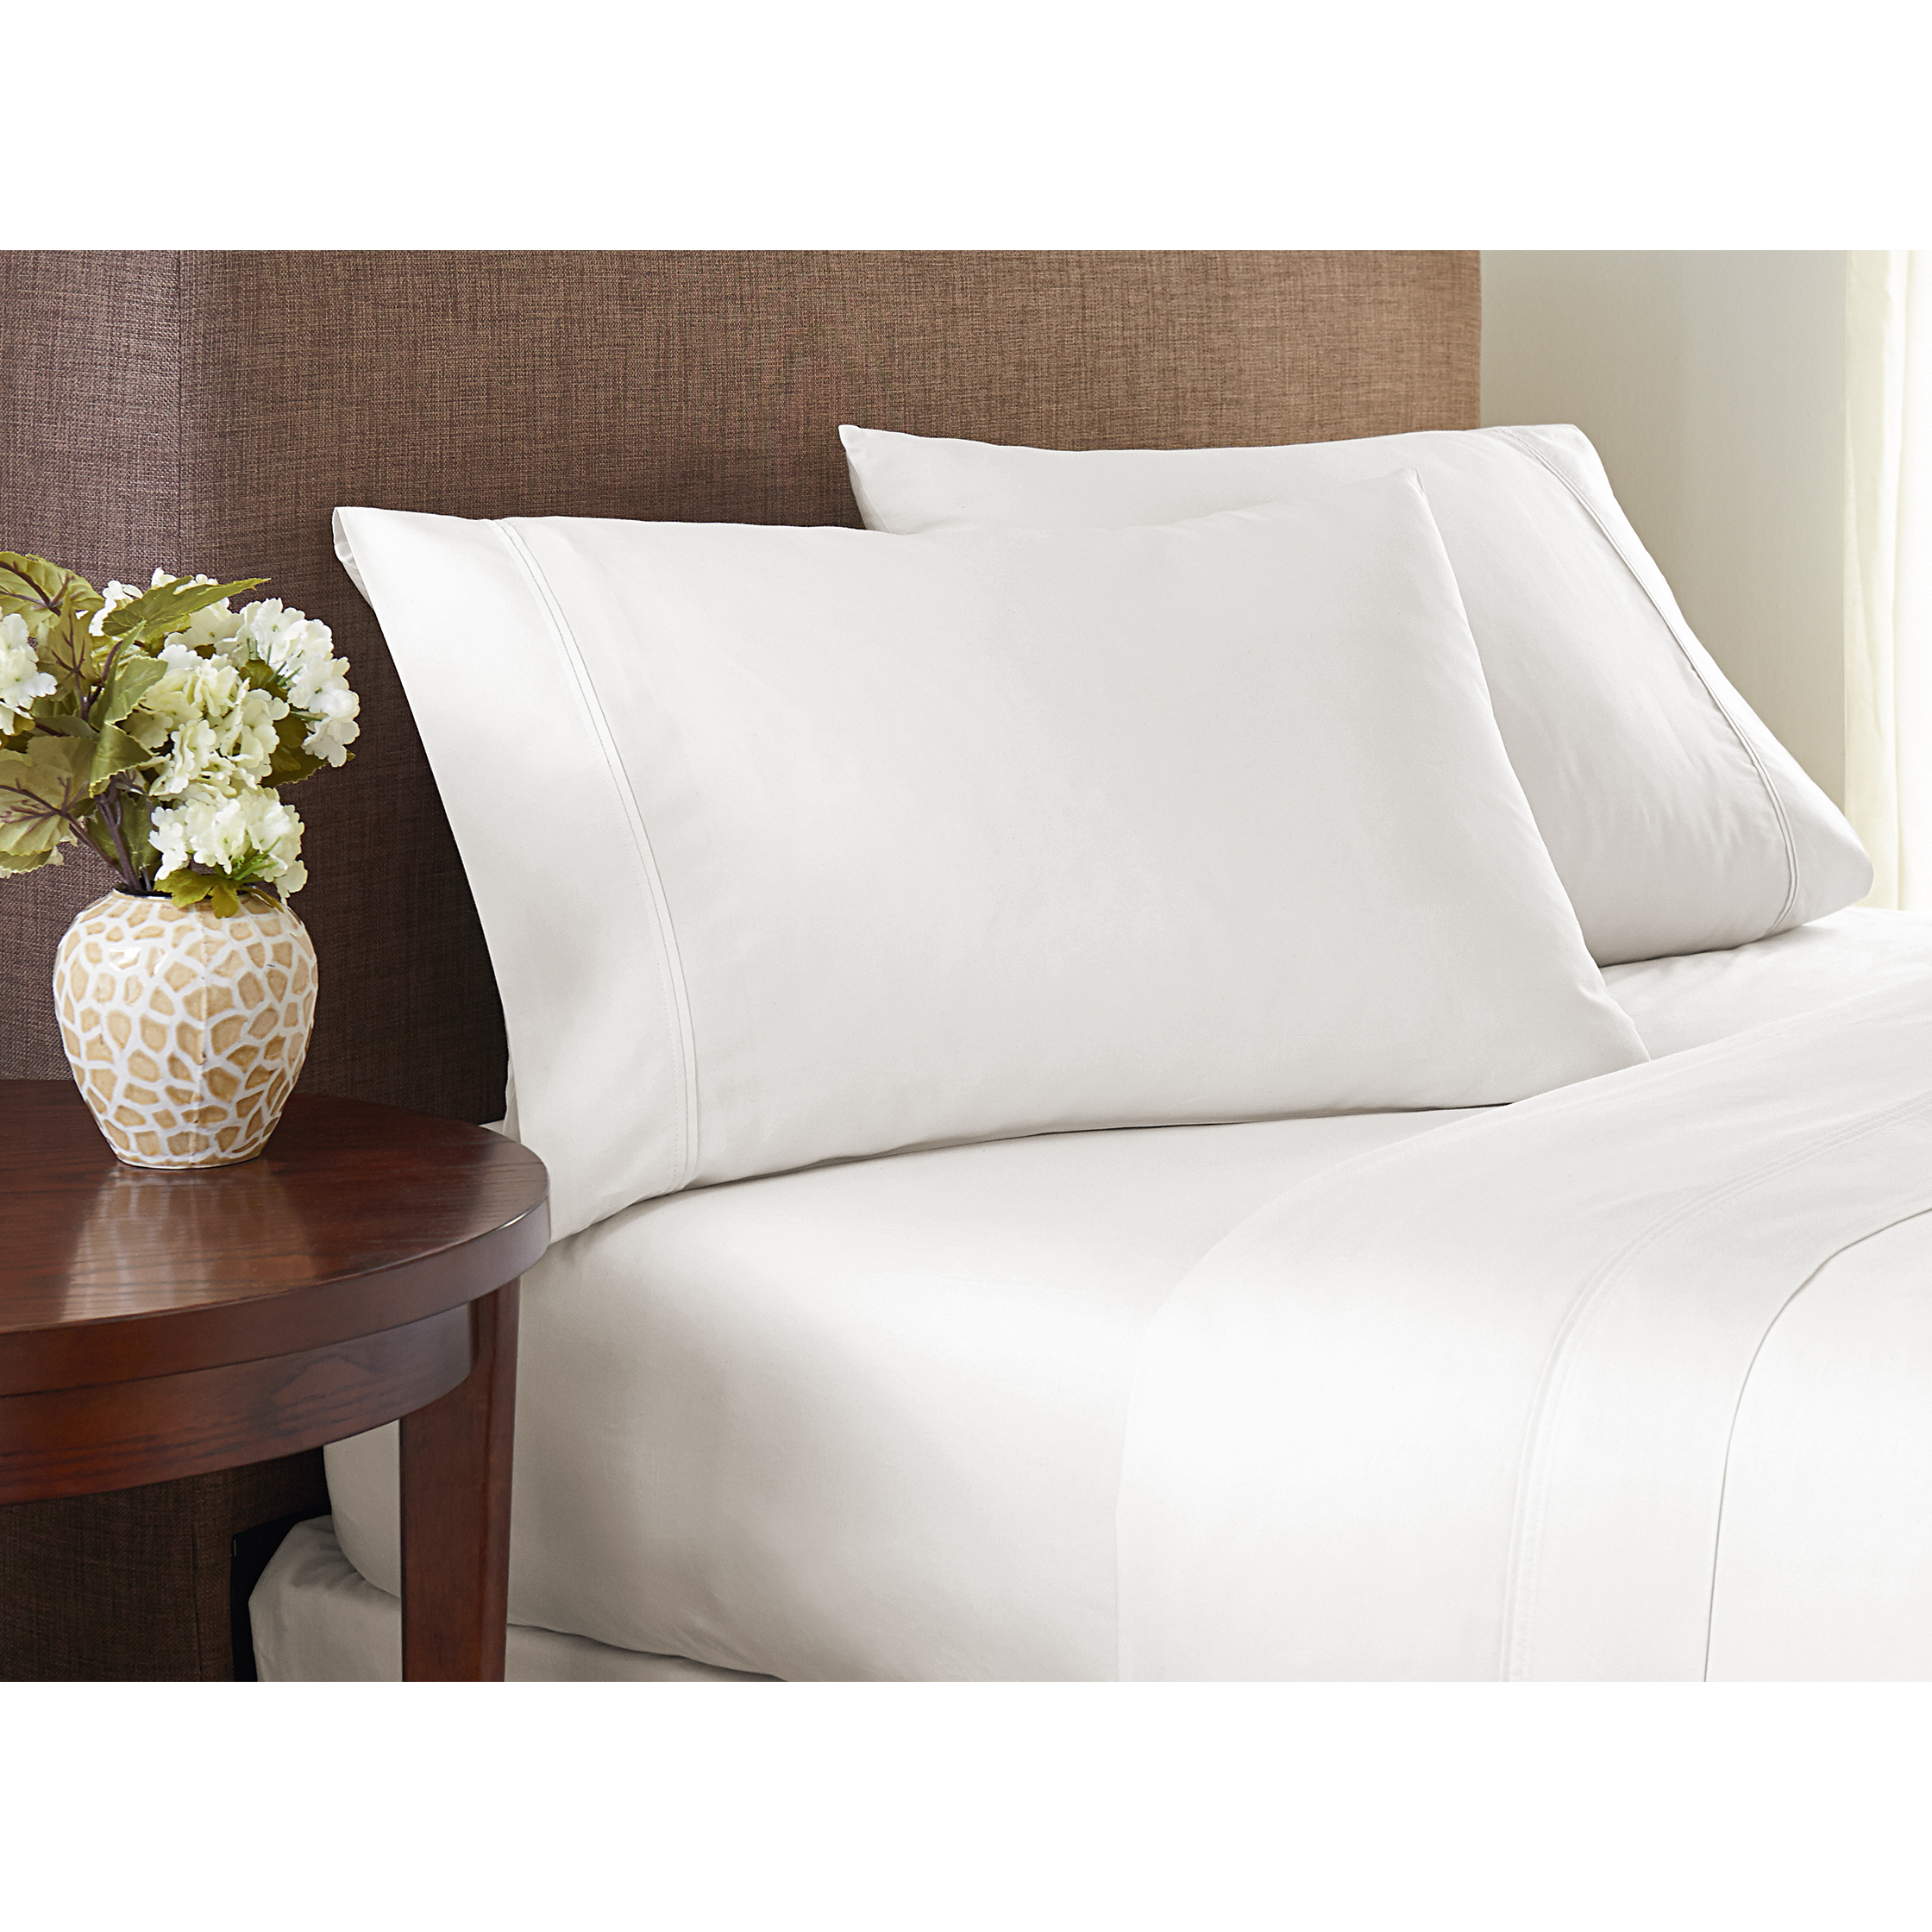 T400 Flat Bed Sheet 100/% Egyptian Cotton Sateen White, Double